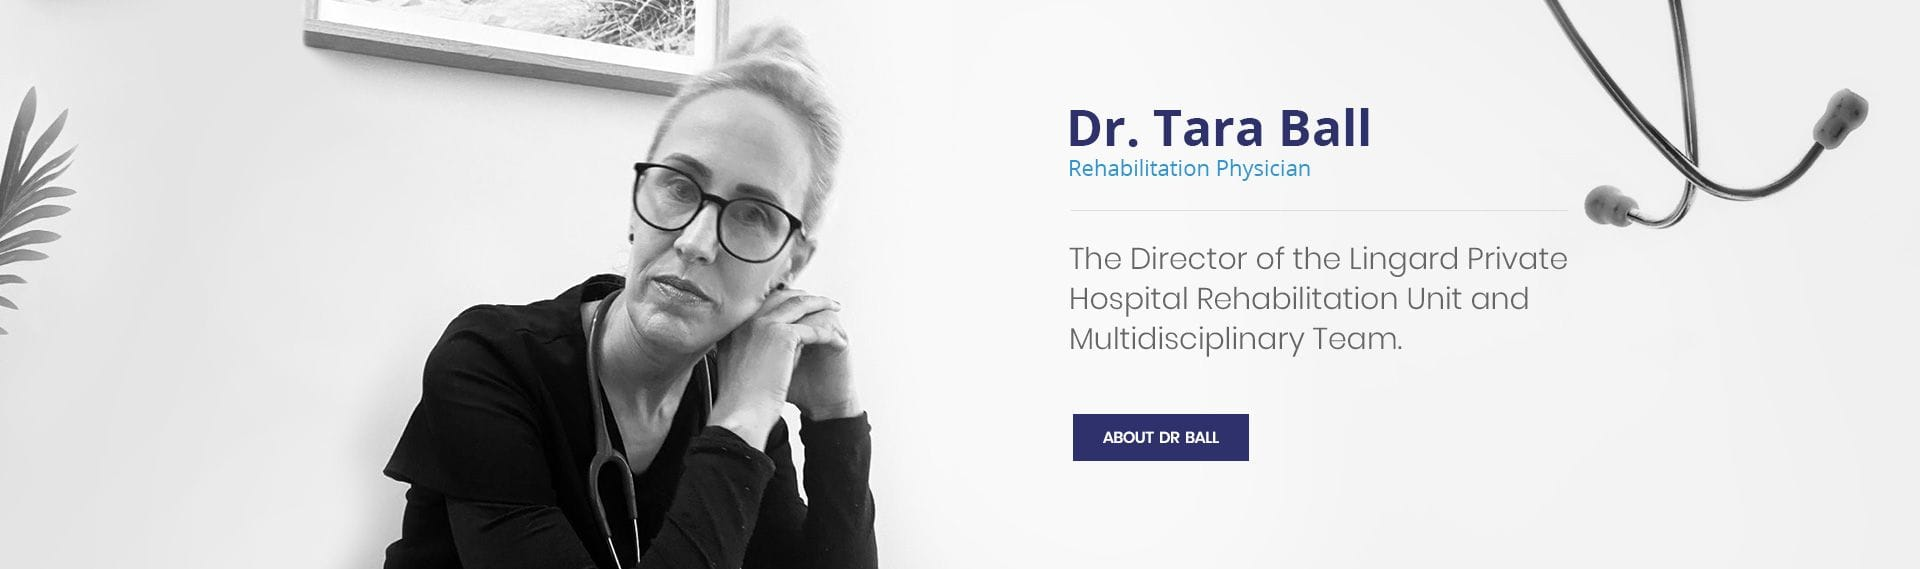 Dr Tara Ball Rehabilitation Physician in Merewether, NSW